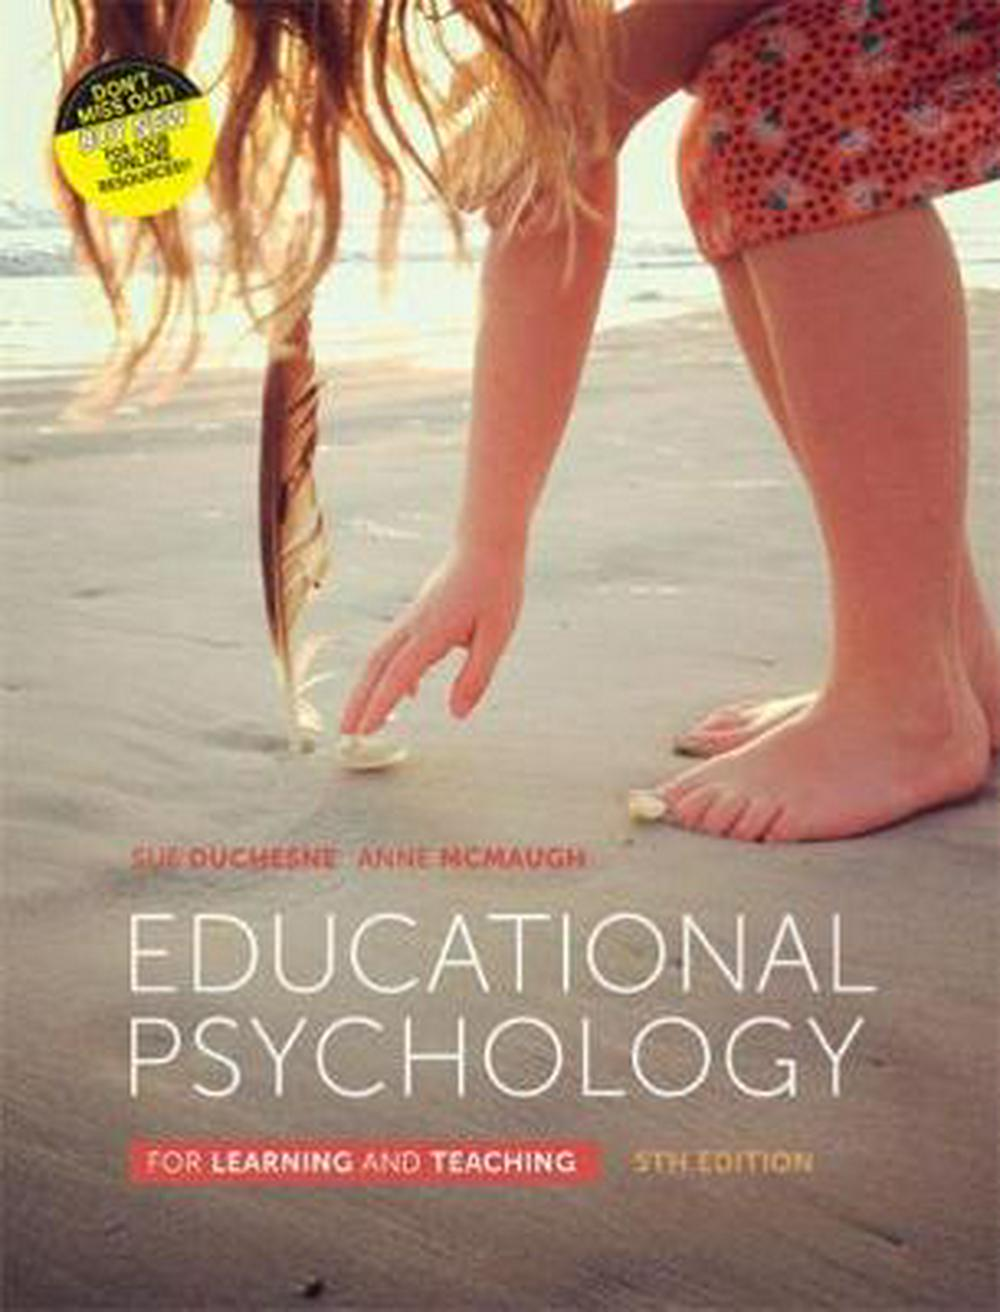 Educational Psychology for Learning and Teaching with Student Resource Access 12 Months + Effective Teaching Strategies